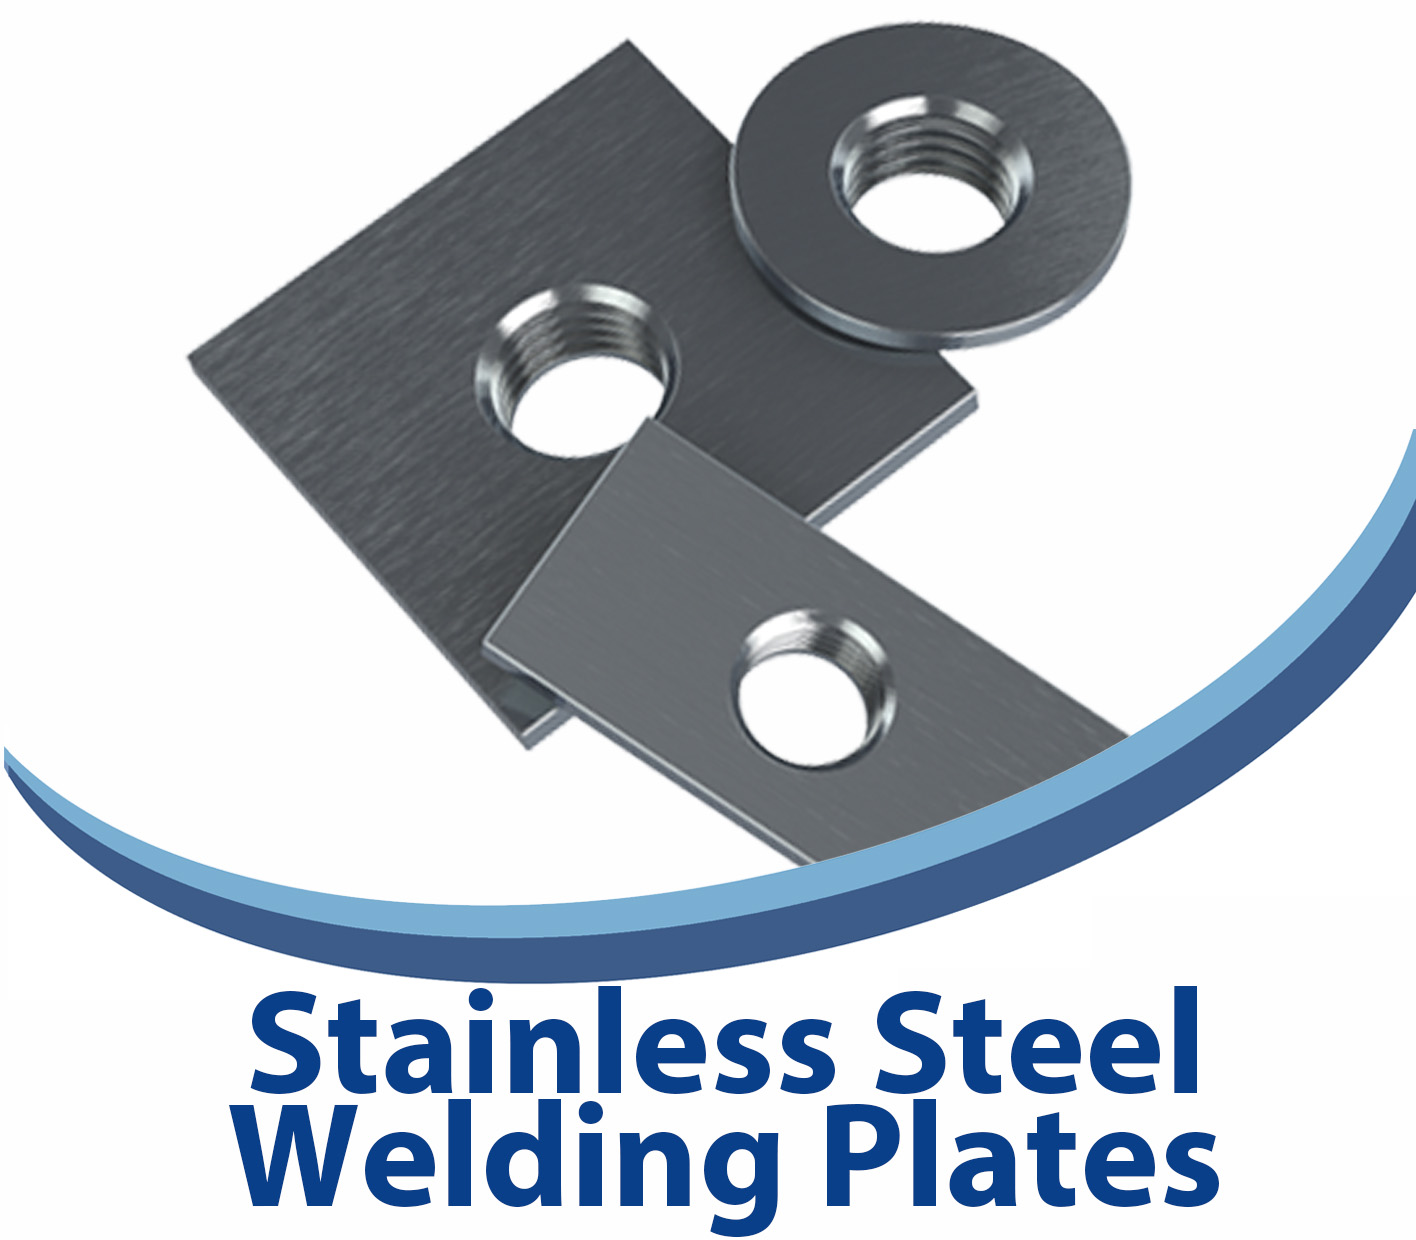 Stainless Steel Welding Plates